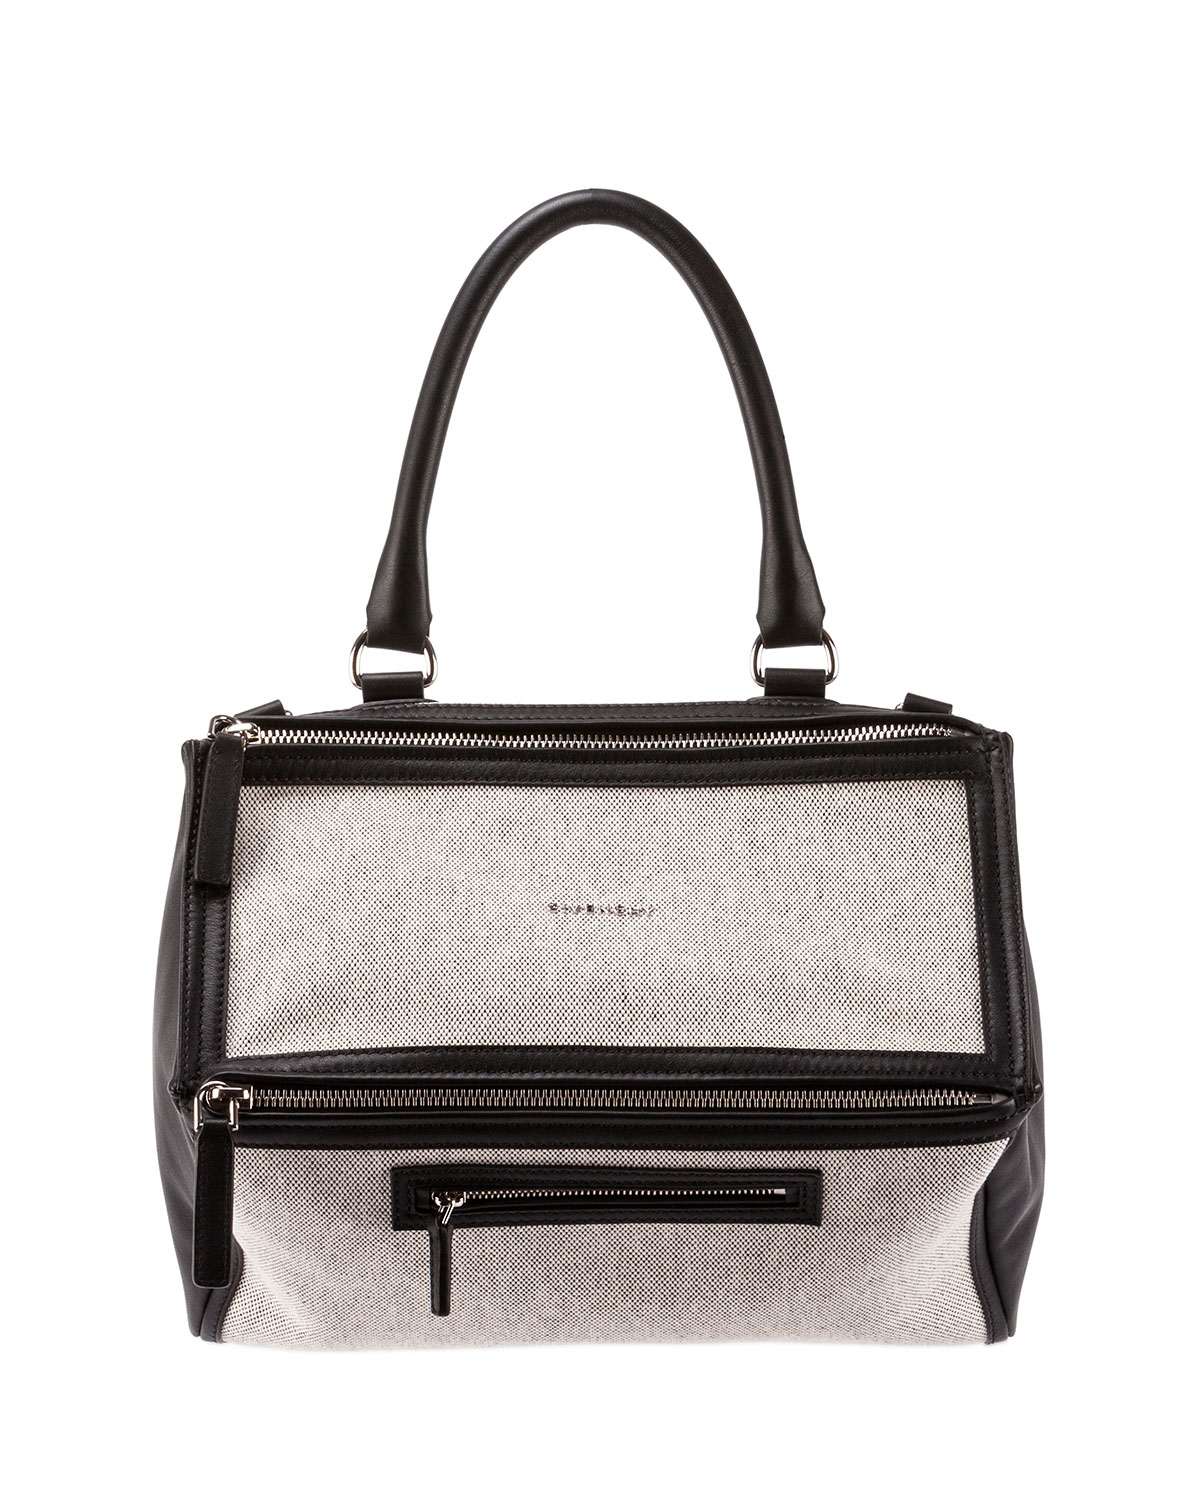 Lyst - Givenchy Pandora Medium Canvas   Leather Bag in Black c286f3b995a19